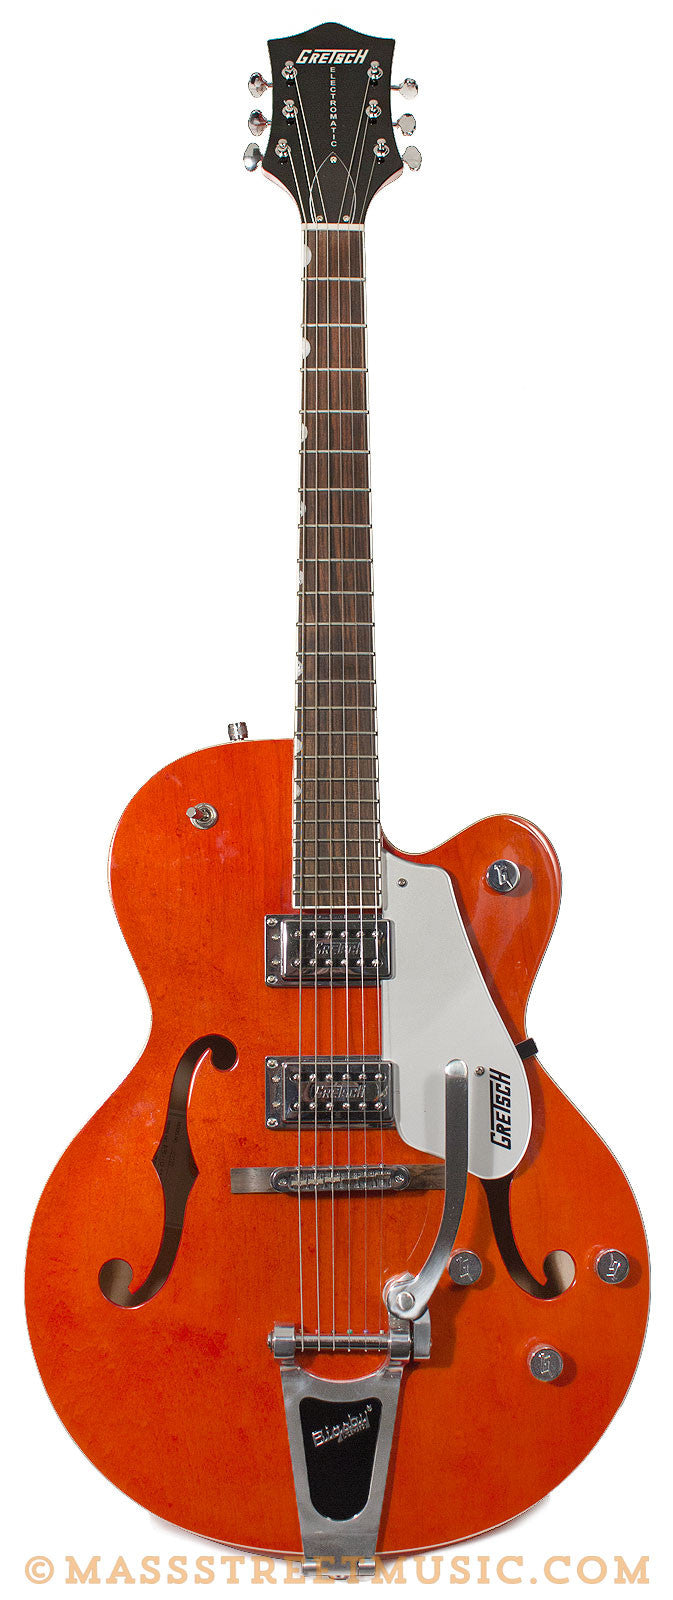 Gretsch G5120 Electromatic Deep Red Great Installation Of Wiring 5120 Diagram Used Electric Guitar Orange Near Mint Rh Massstreetmusic Com